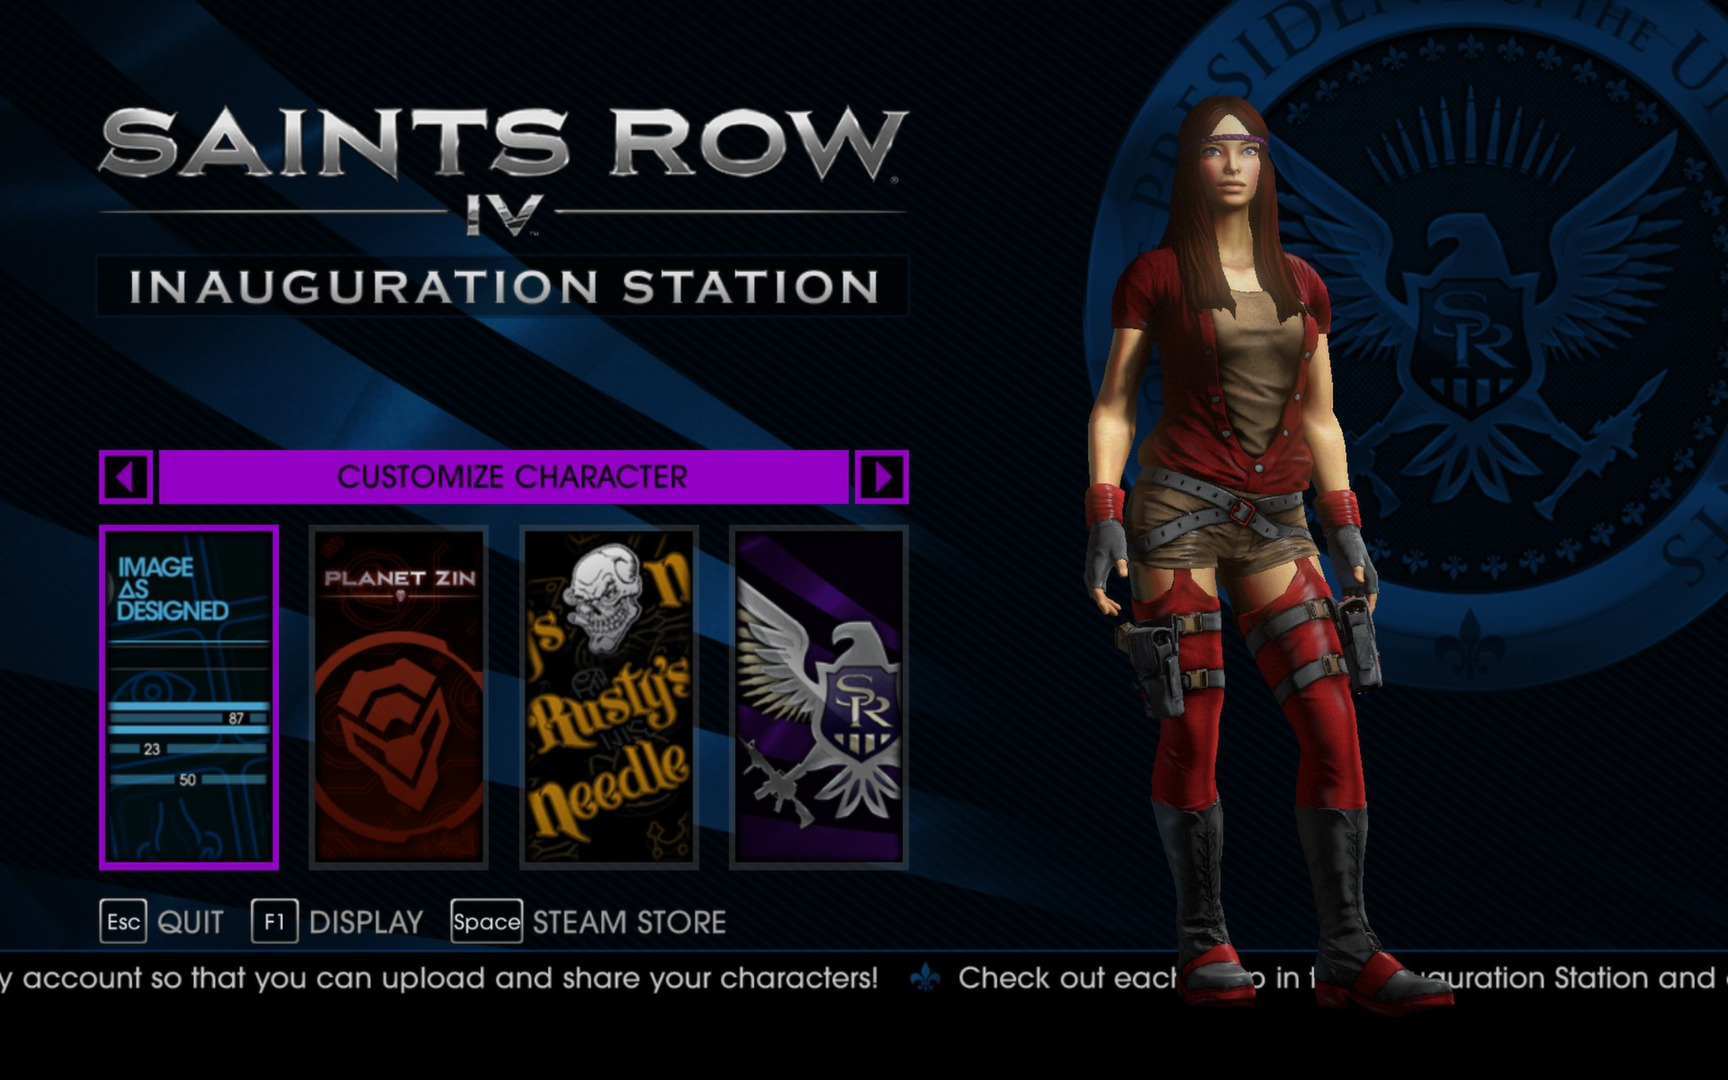 Saints row 4 steam matchmaking not working